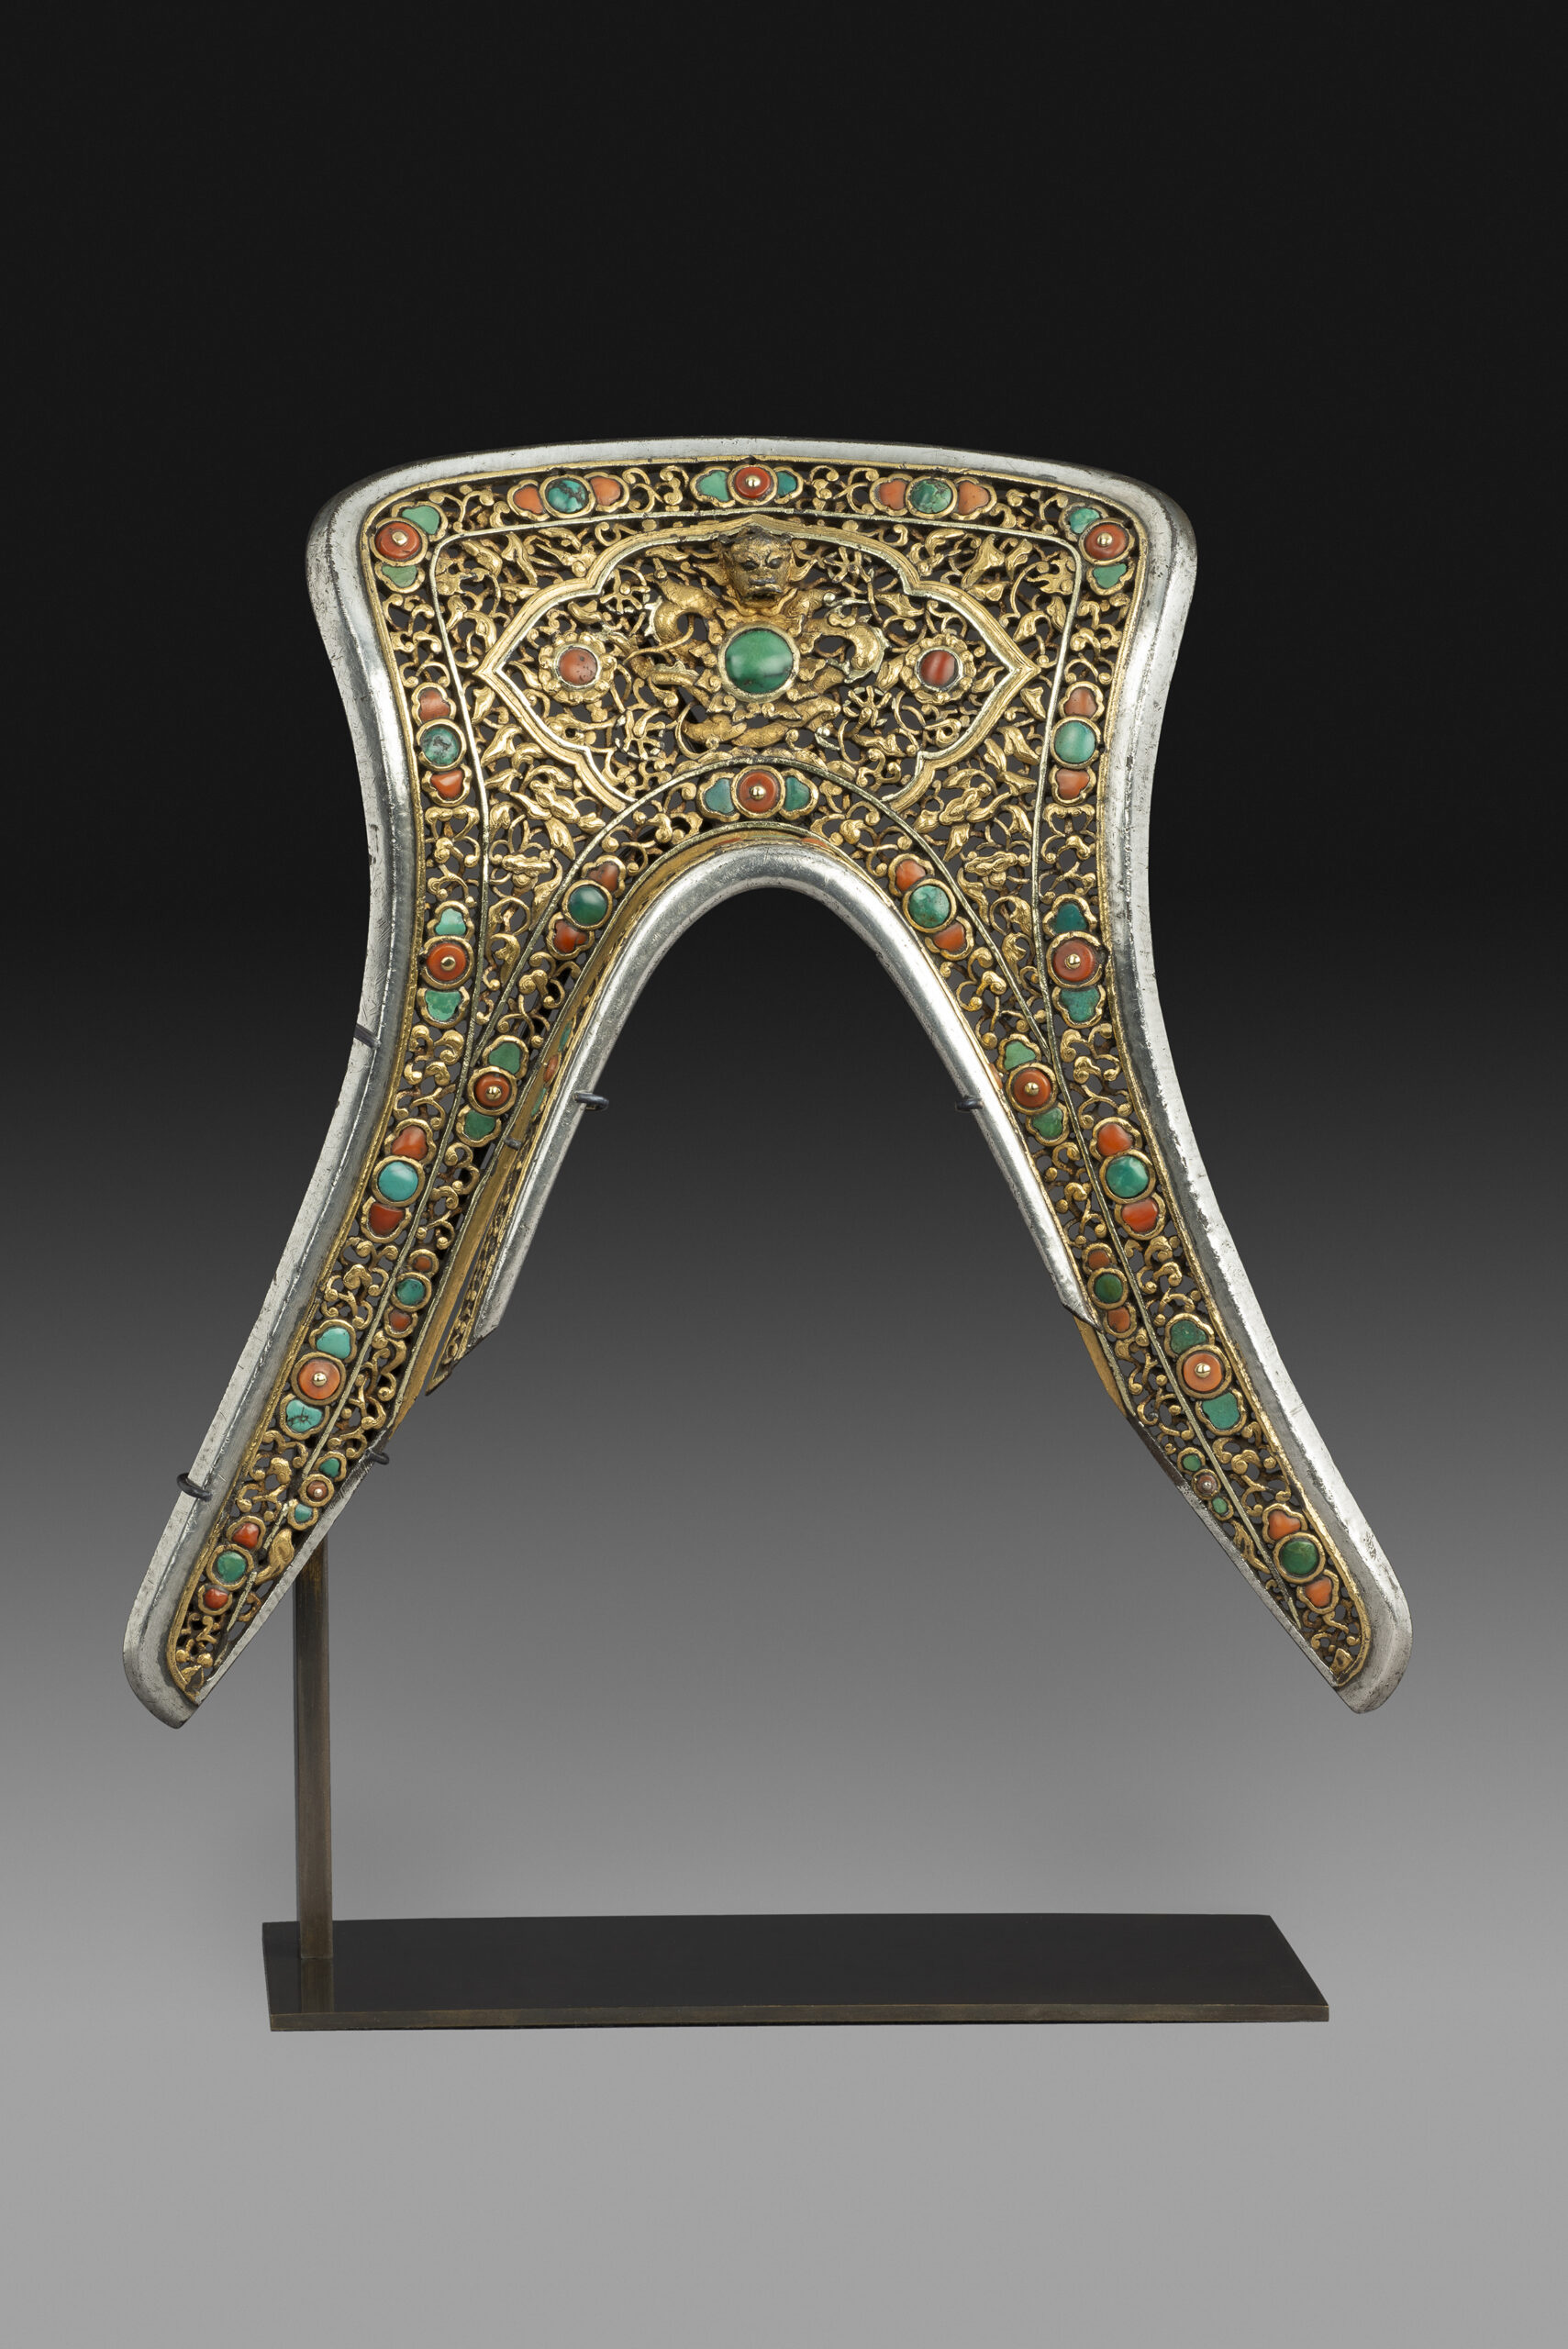 A Saddle Plate 16th or 17th century China. Iron, gold, malachite, coral. 24.8 cm / 9.8 in x 24.8 cm / 9.8 in